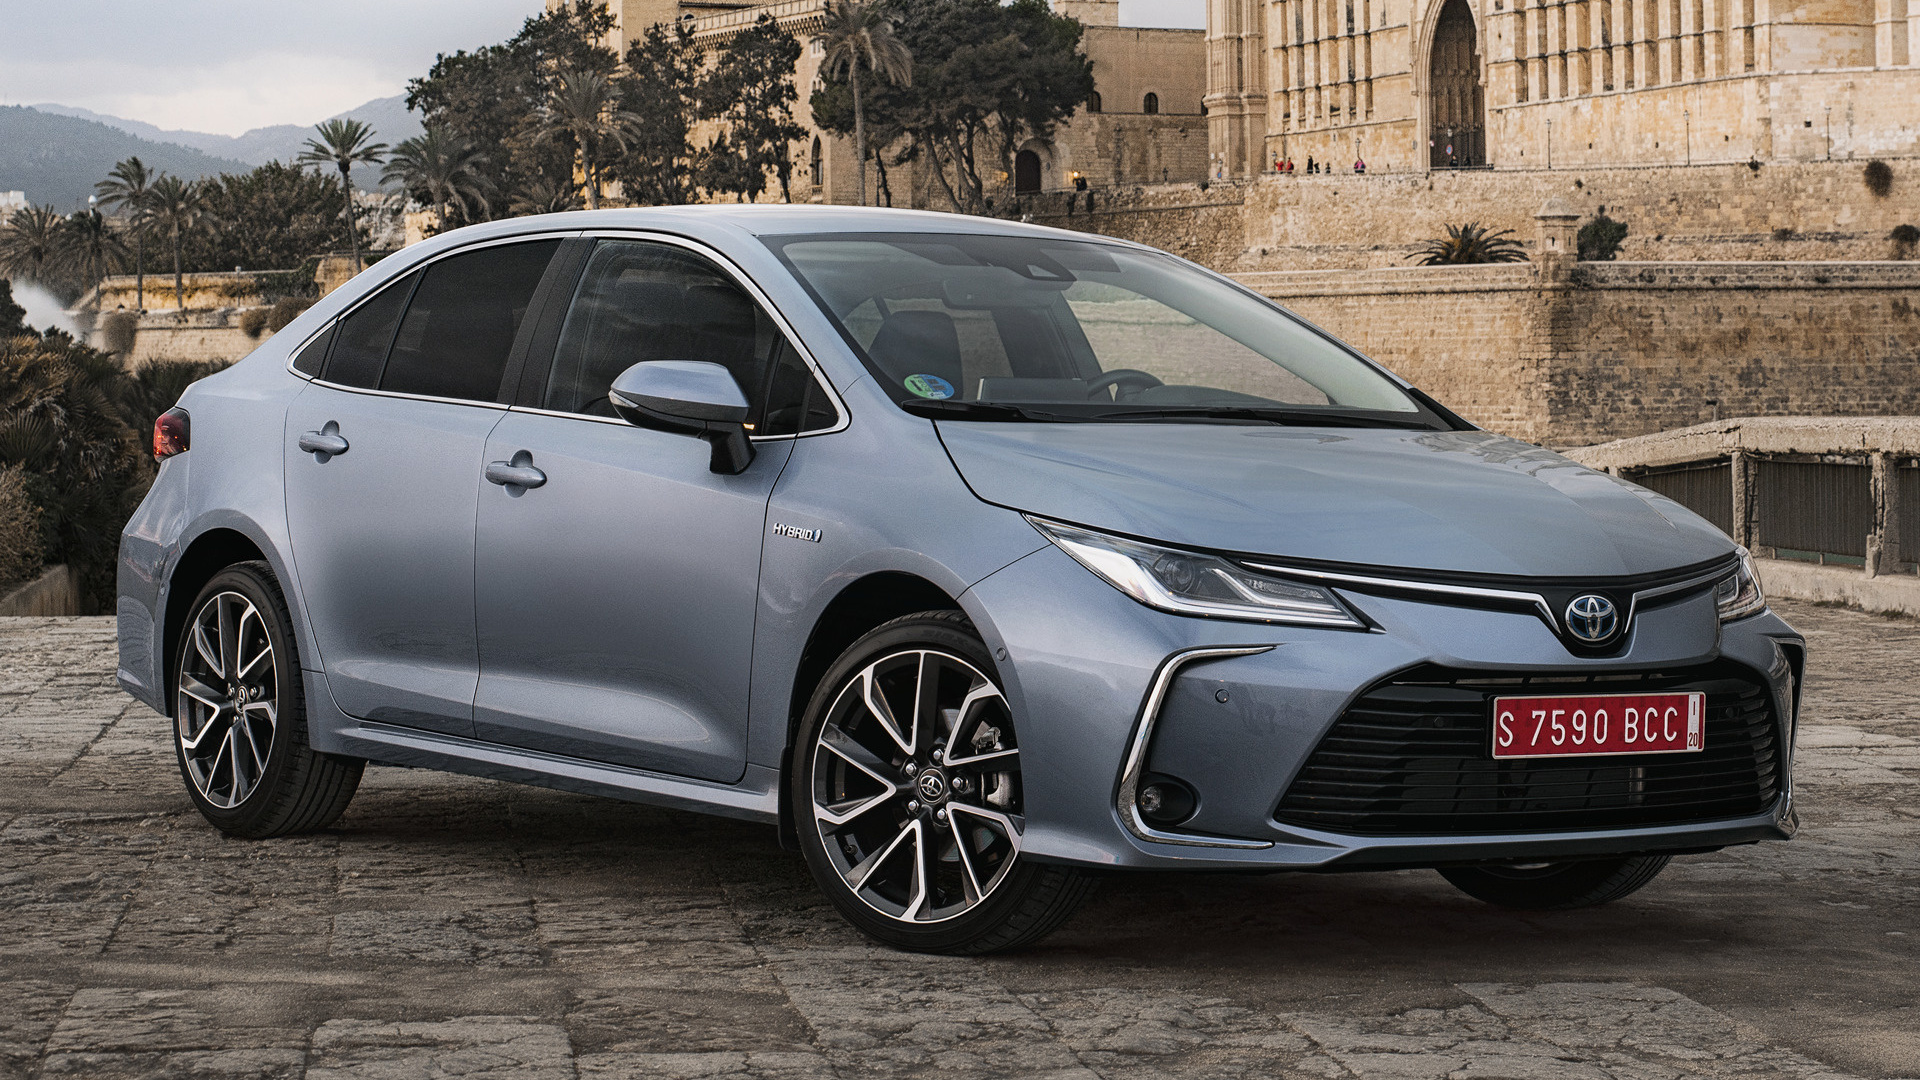 Honda Hybrid Cars >> 2019 Toyota Corolla Sedan Hybrid - Wallpapers and HD Images | Car Pixel